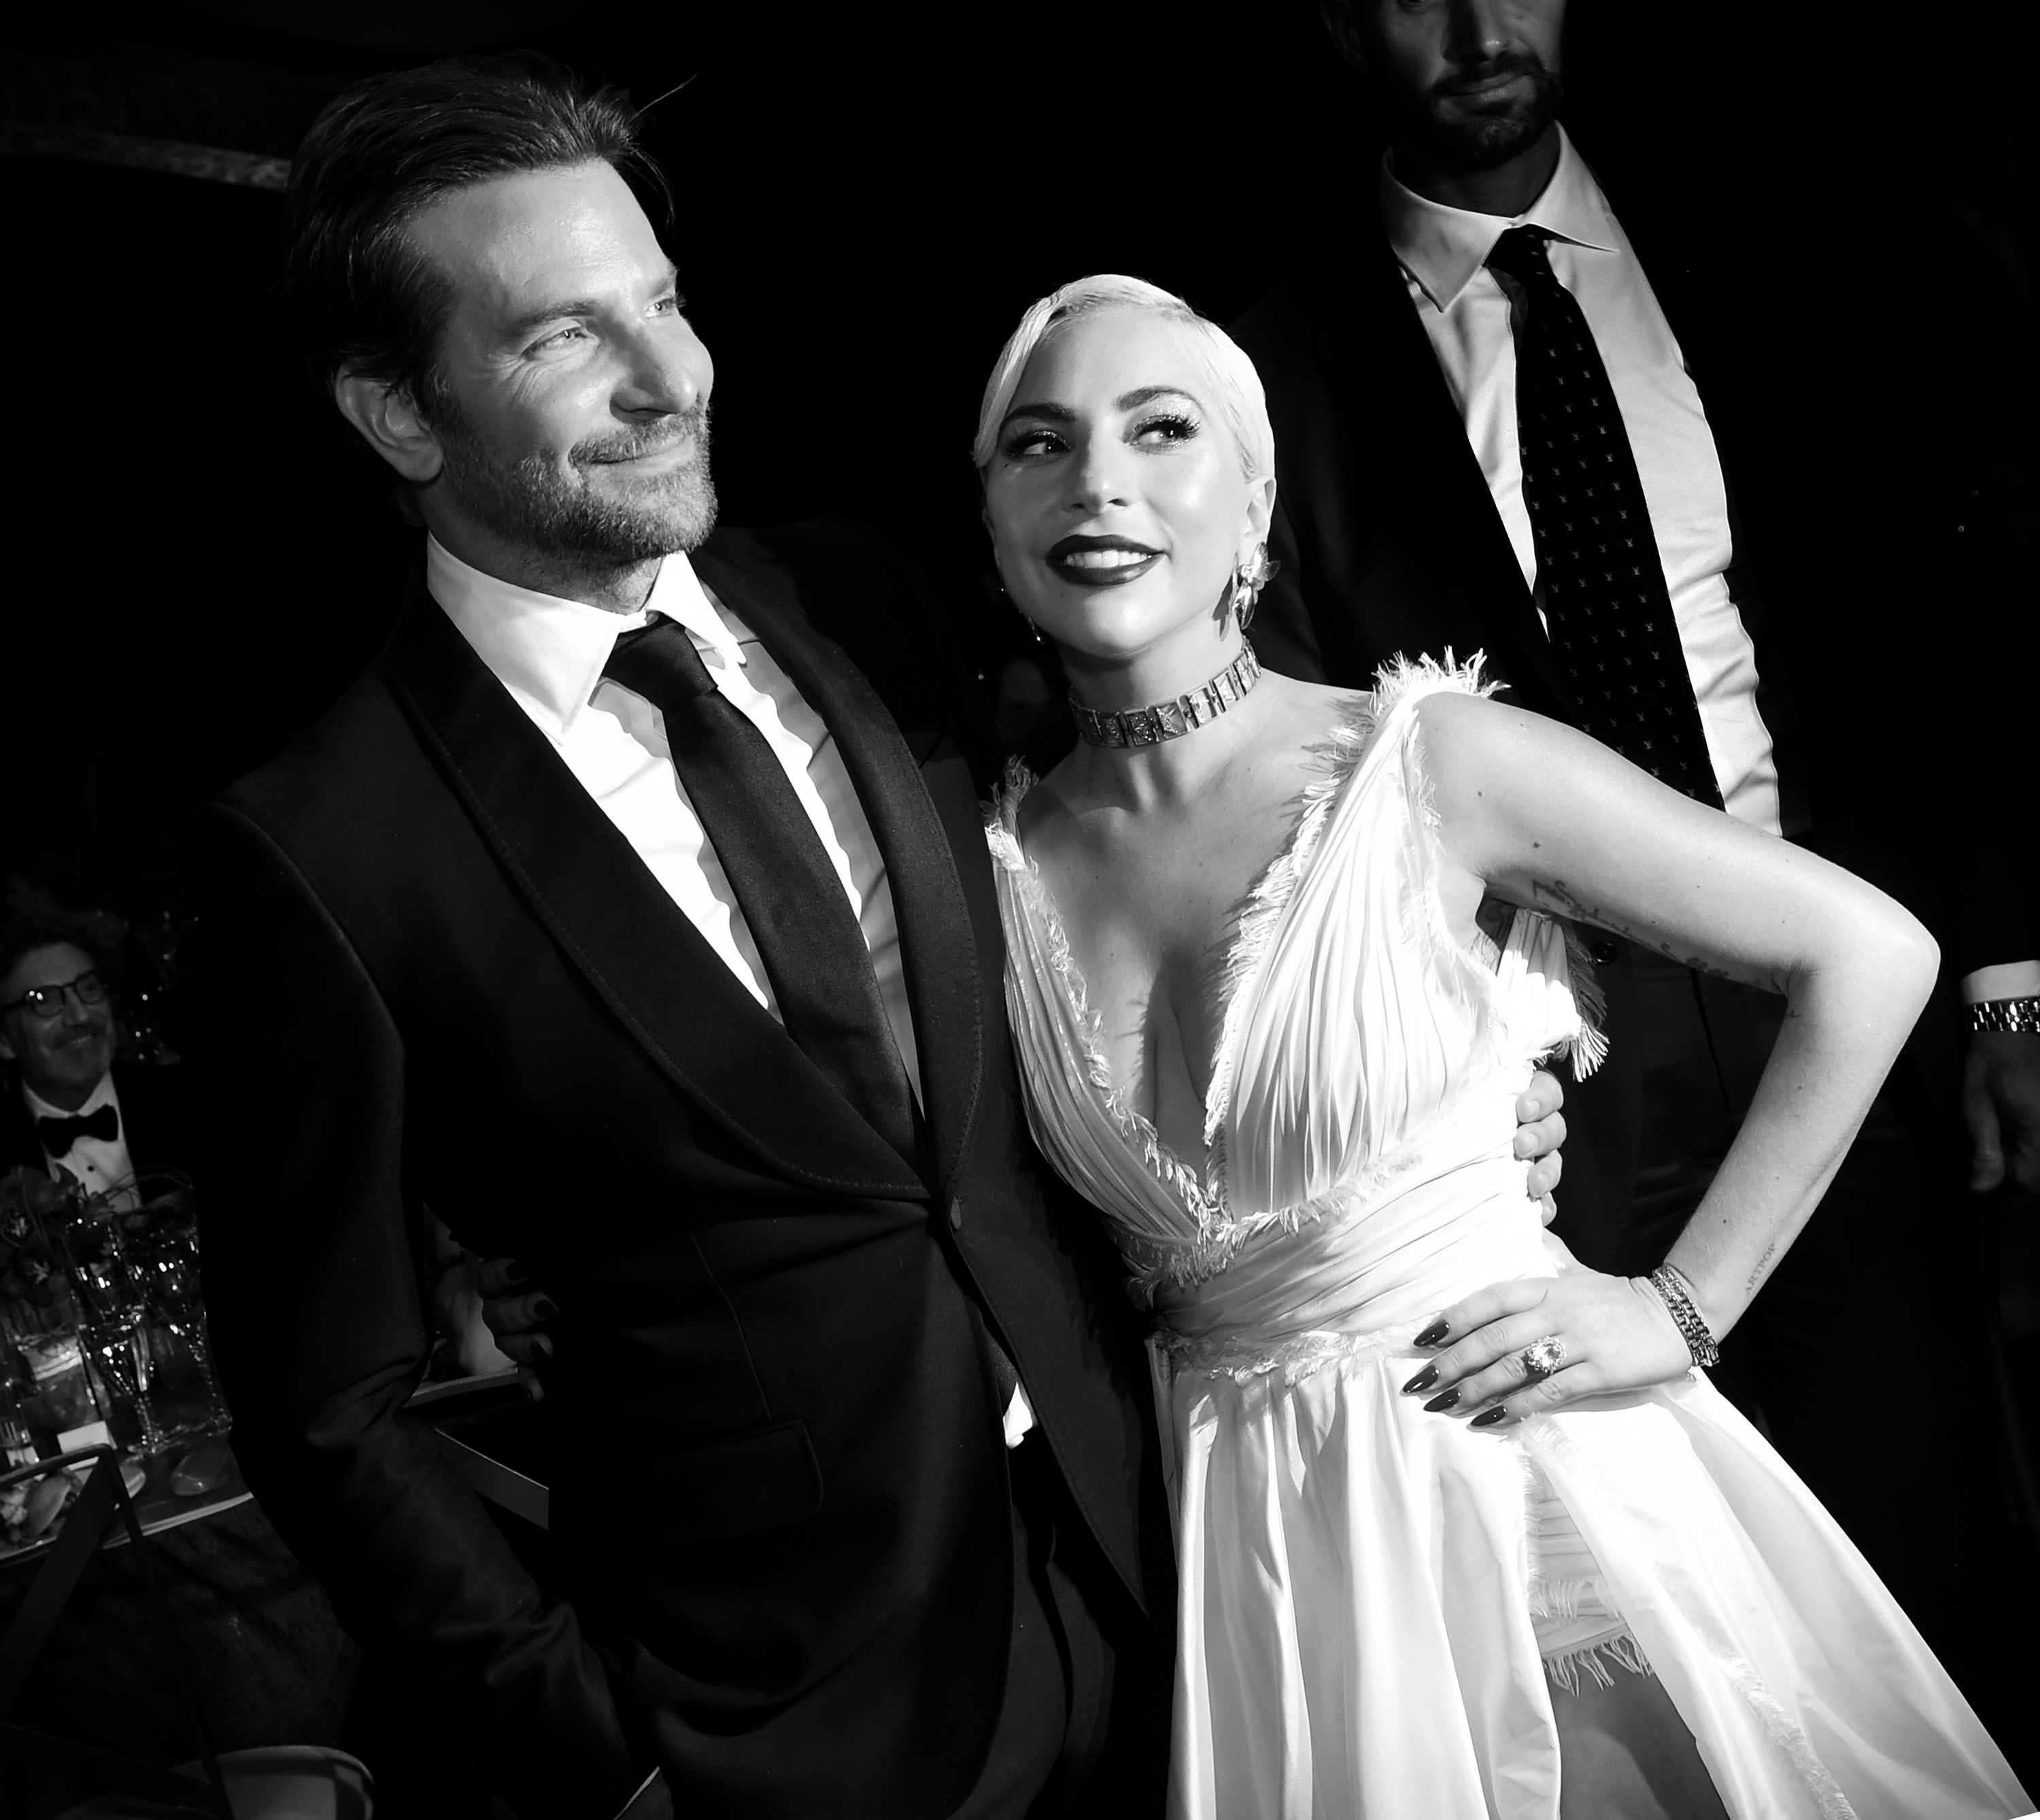 Bradley Cooper Wants to Give Fans 'A Star Is Born' Live Reading with Lady Gaga